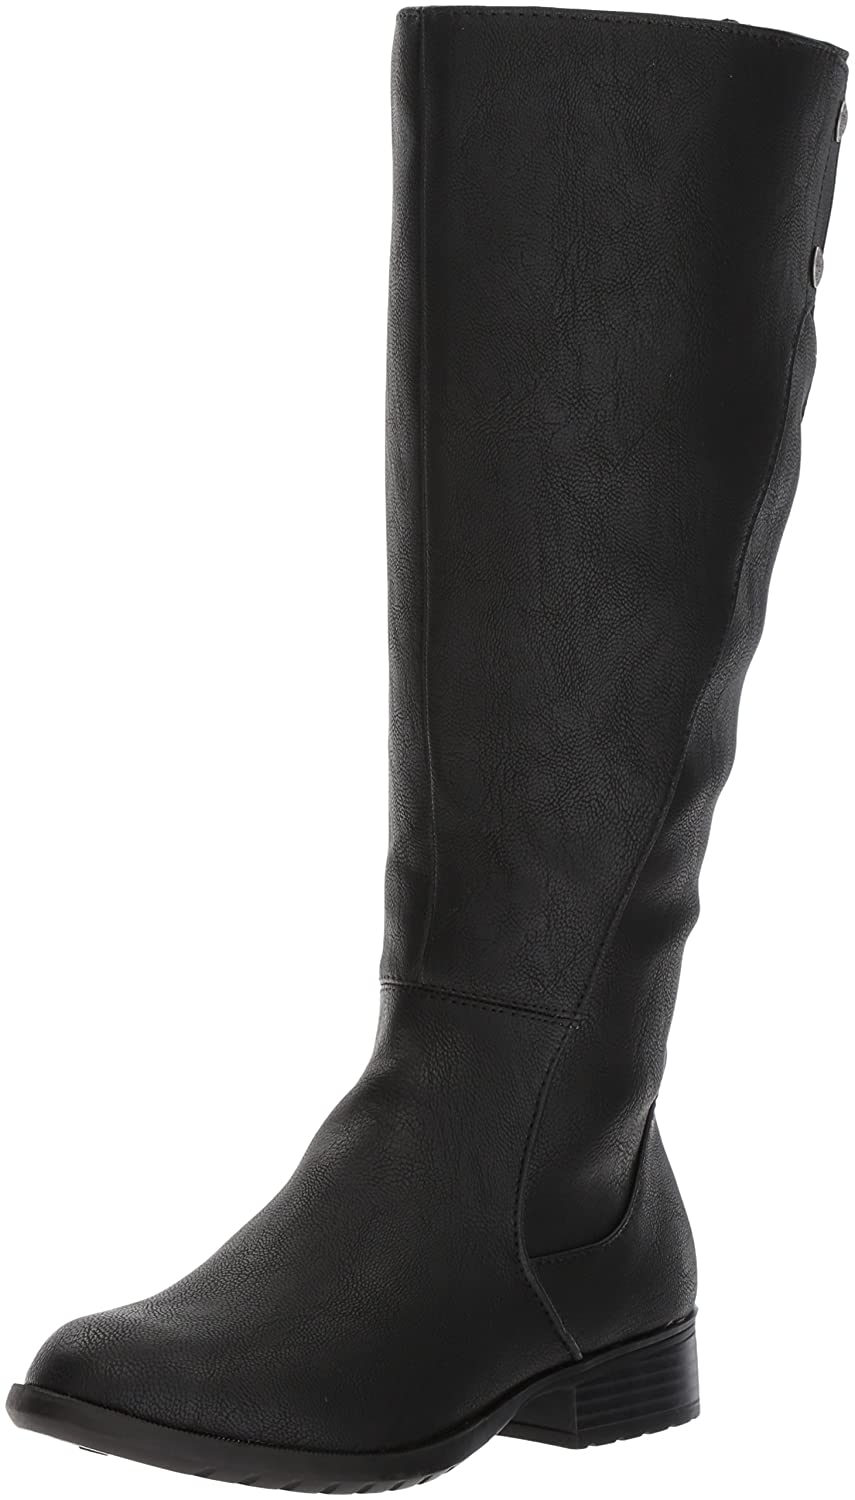 LifeStride Women's Xripley-Wc Riding Boot B07218YSL5 9.5 B(M) US|Black 4